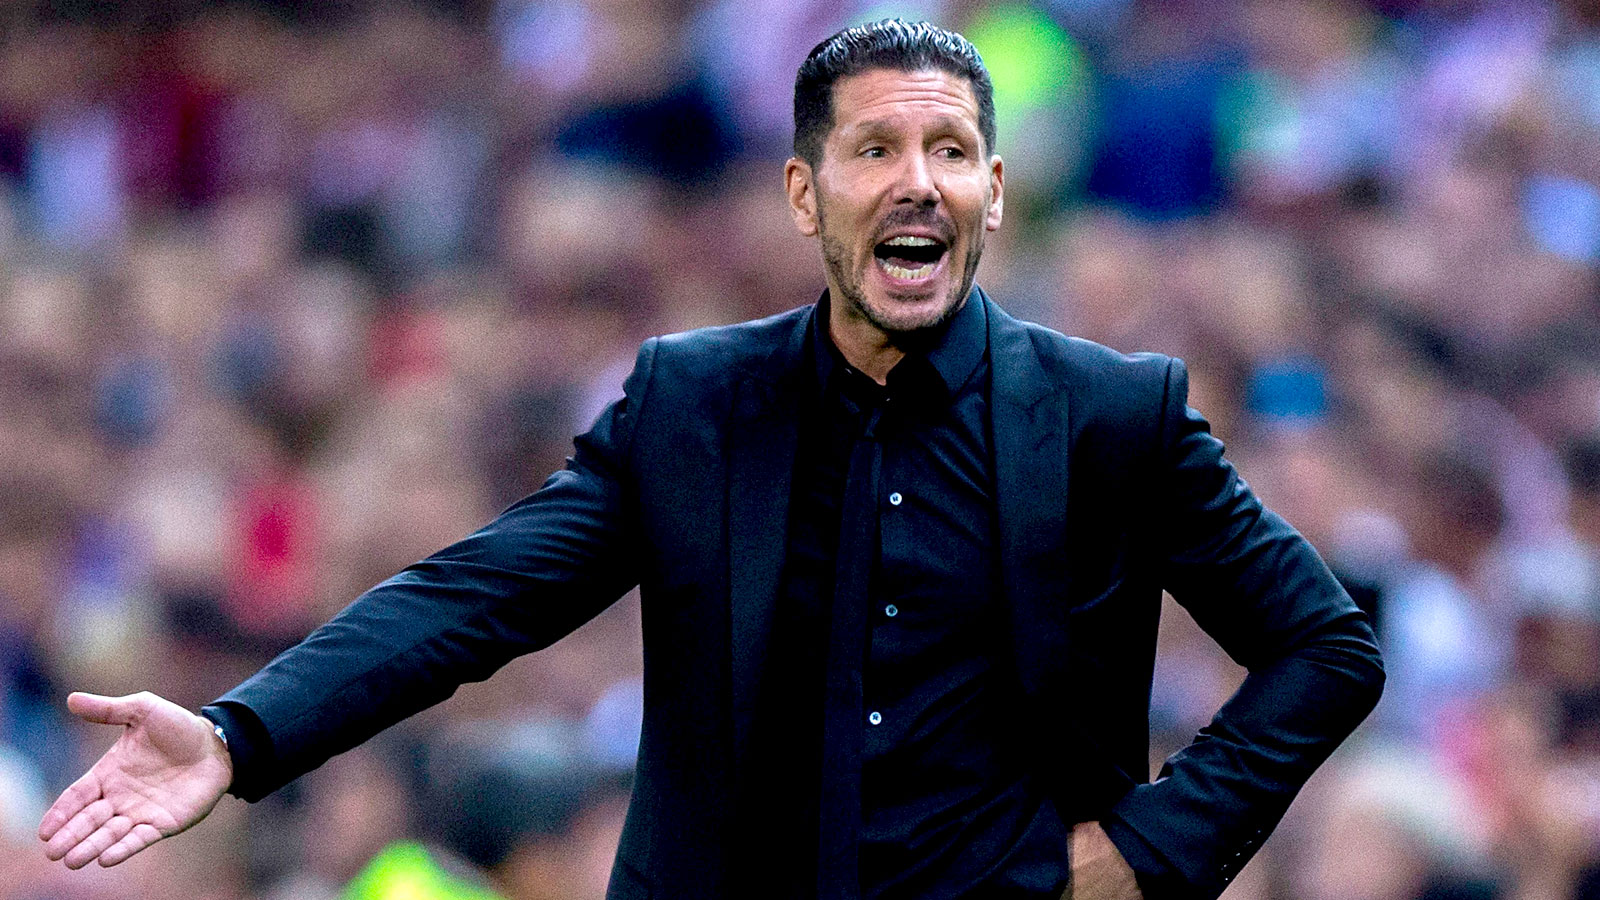 Chelsea consider Simeone as a replacement for Mourinho